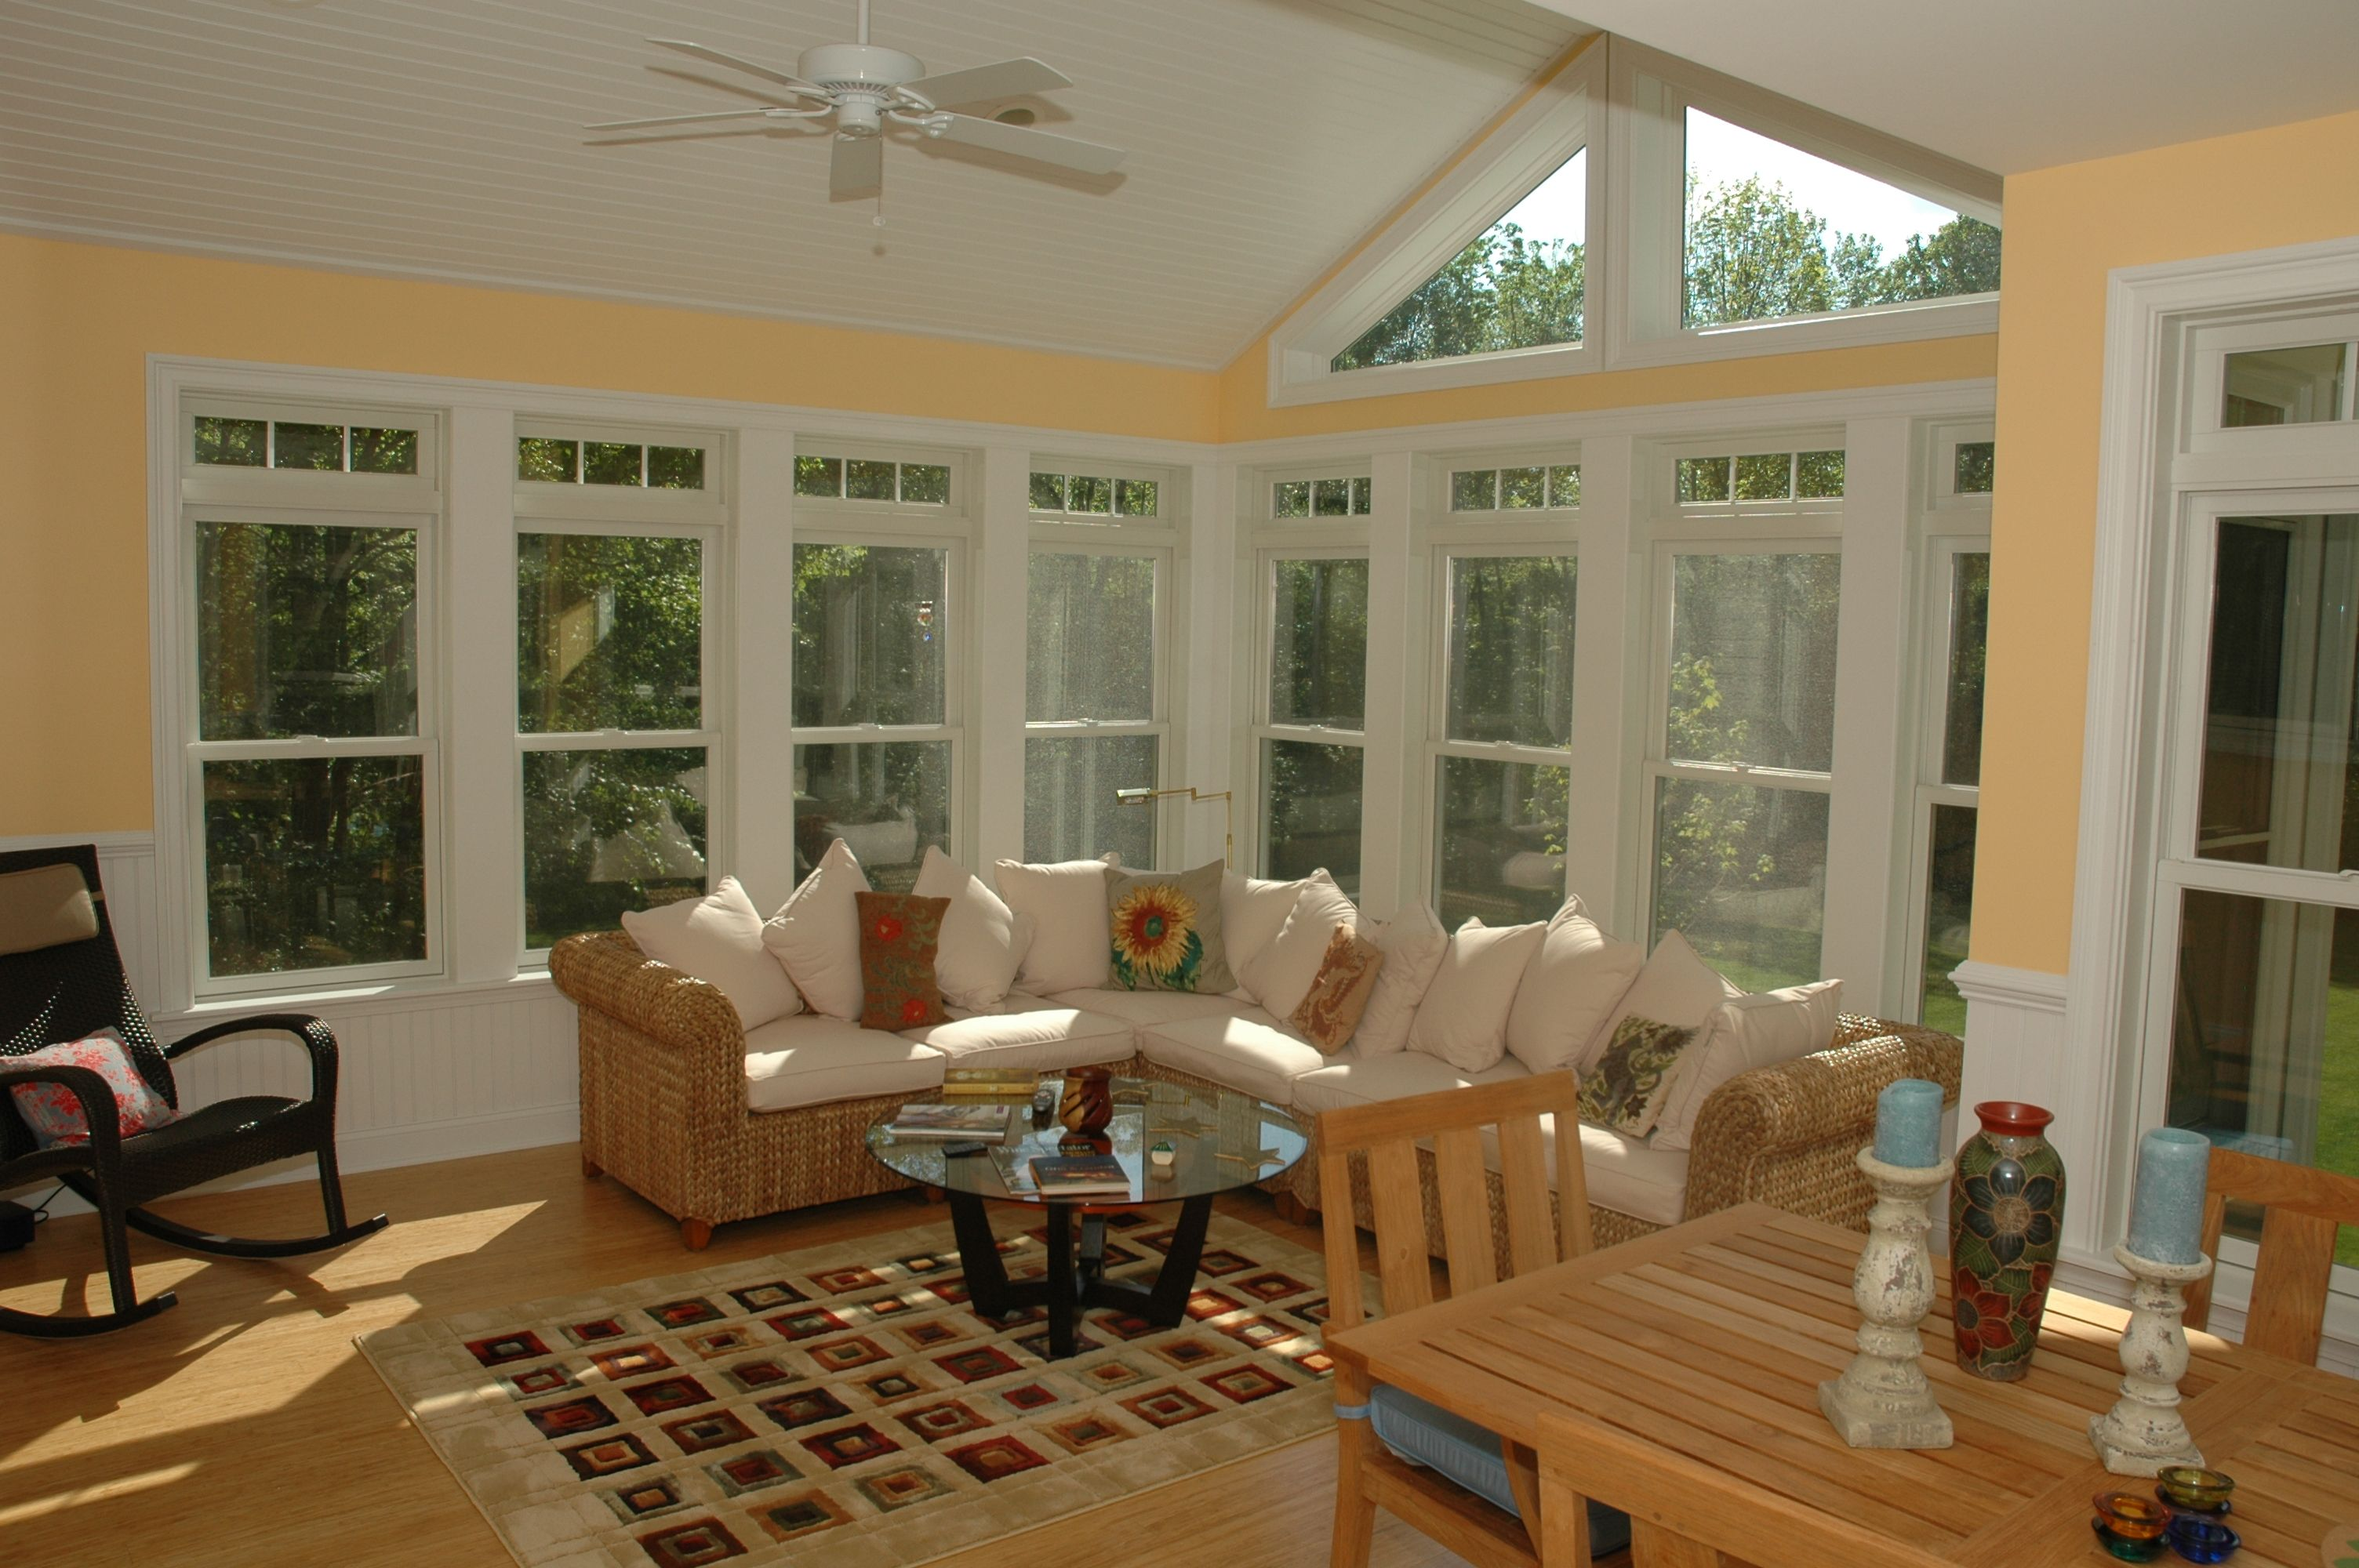 three season room - bead board under windows to match ceiling